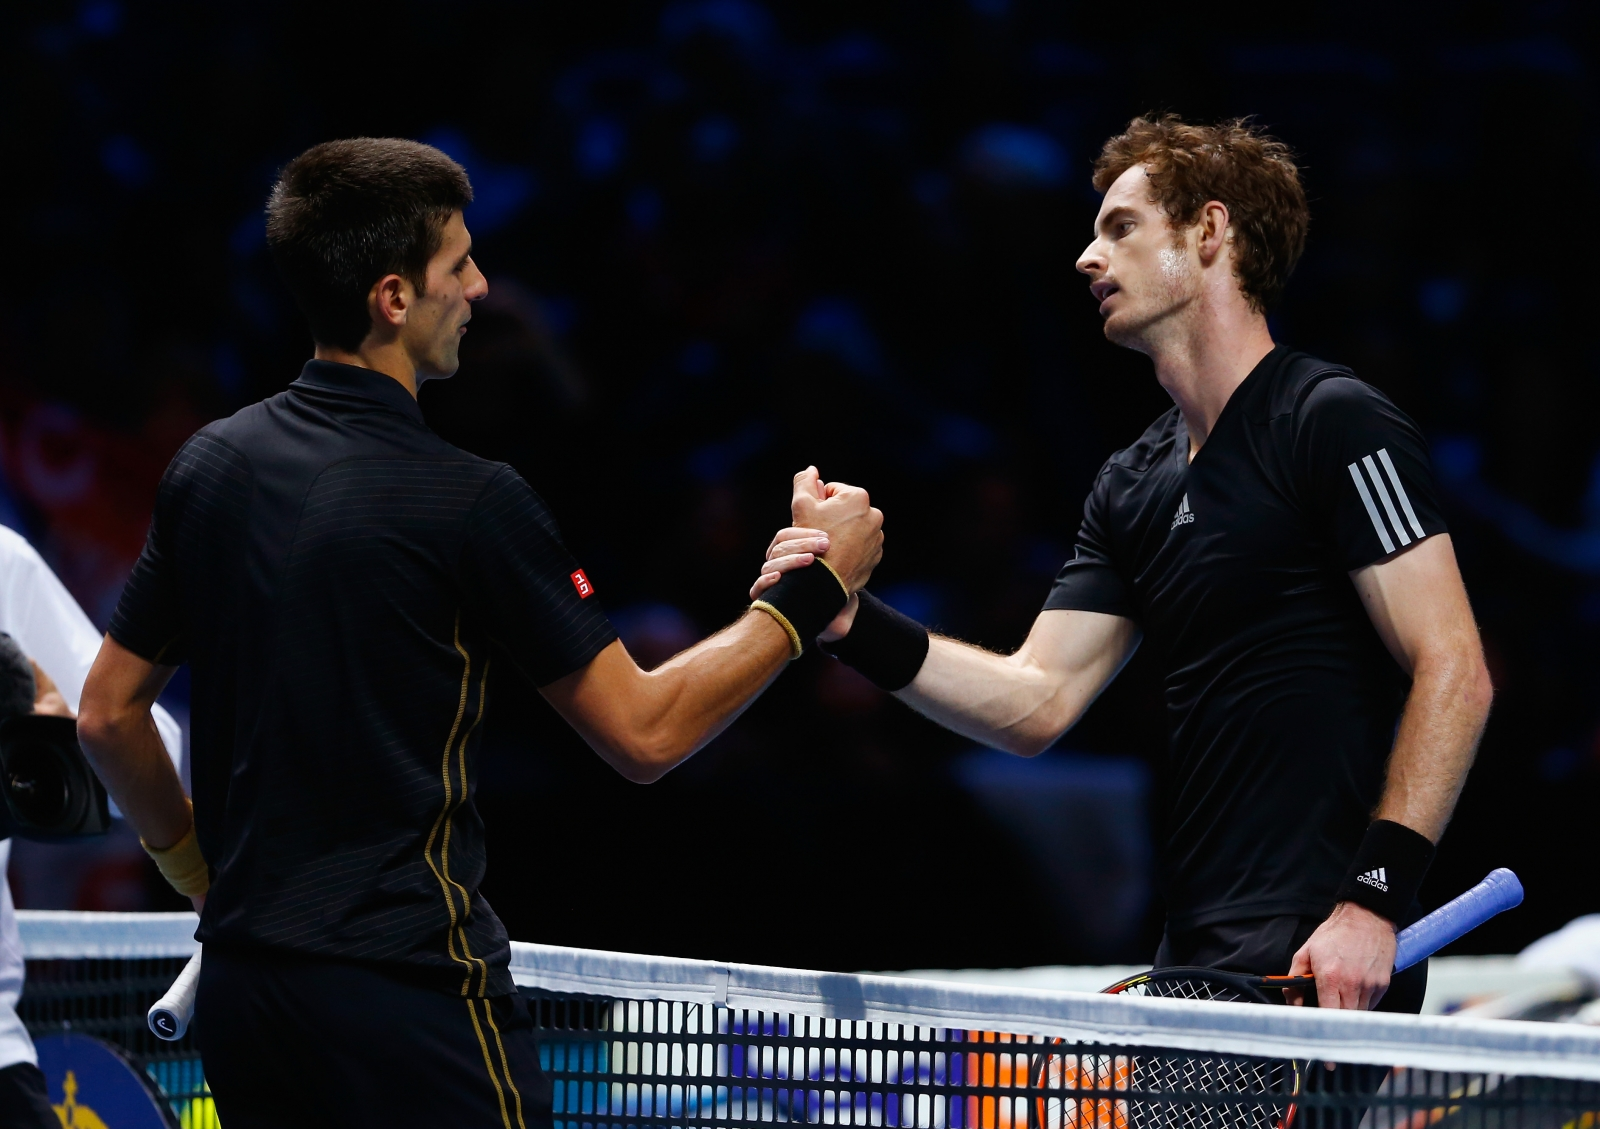 Novak Djokovic v Andy Murray